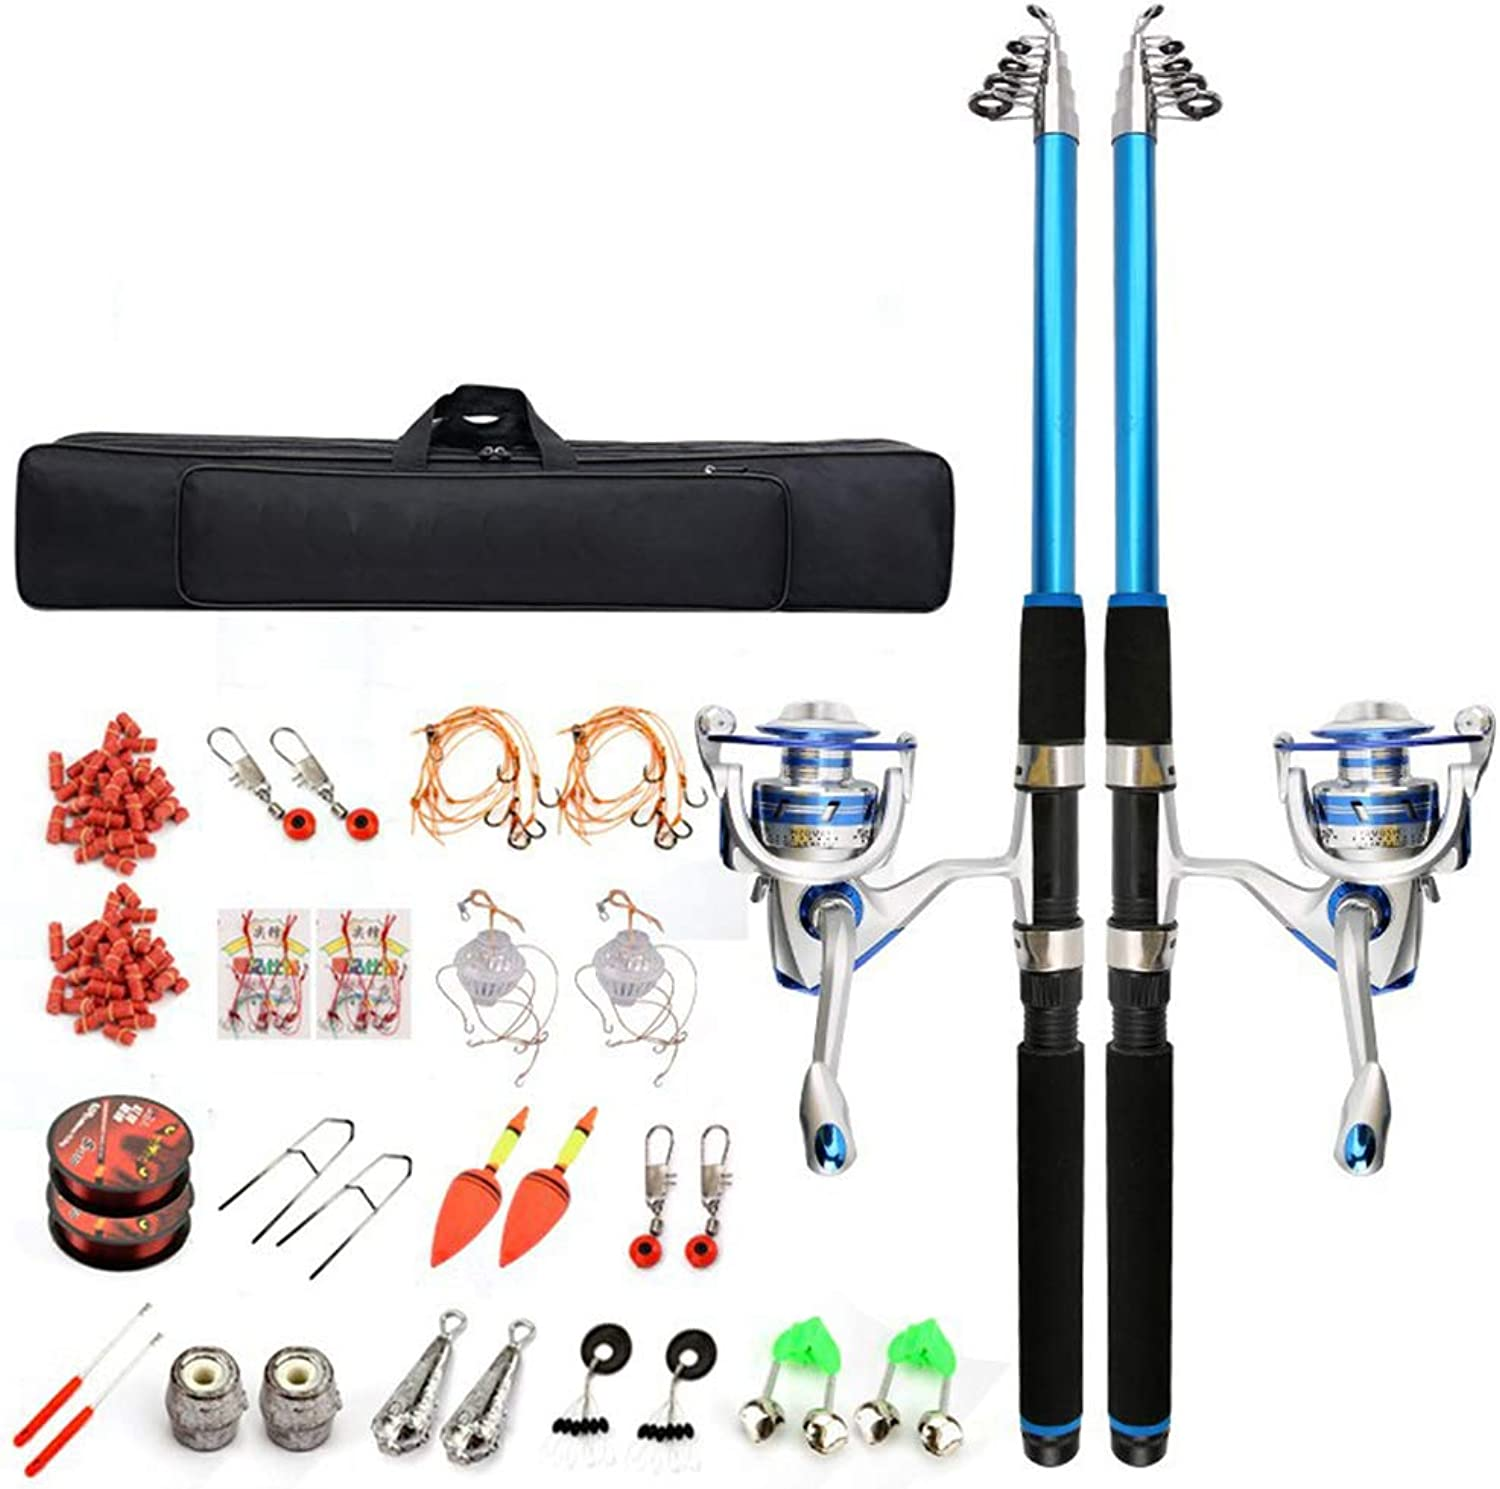 Fishing Tackle Kit with Spinning Rod Reel Combos Line Lures Hooks Travel Bag, for Sea Saltwater Freshwater Boat Fishing, Starter Complete Full Set